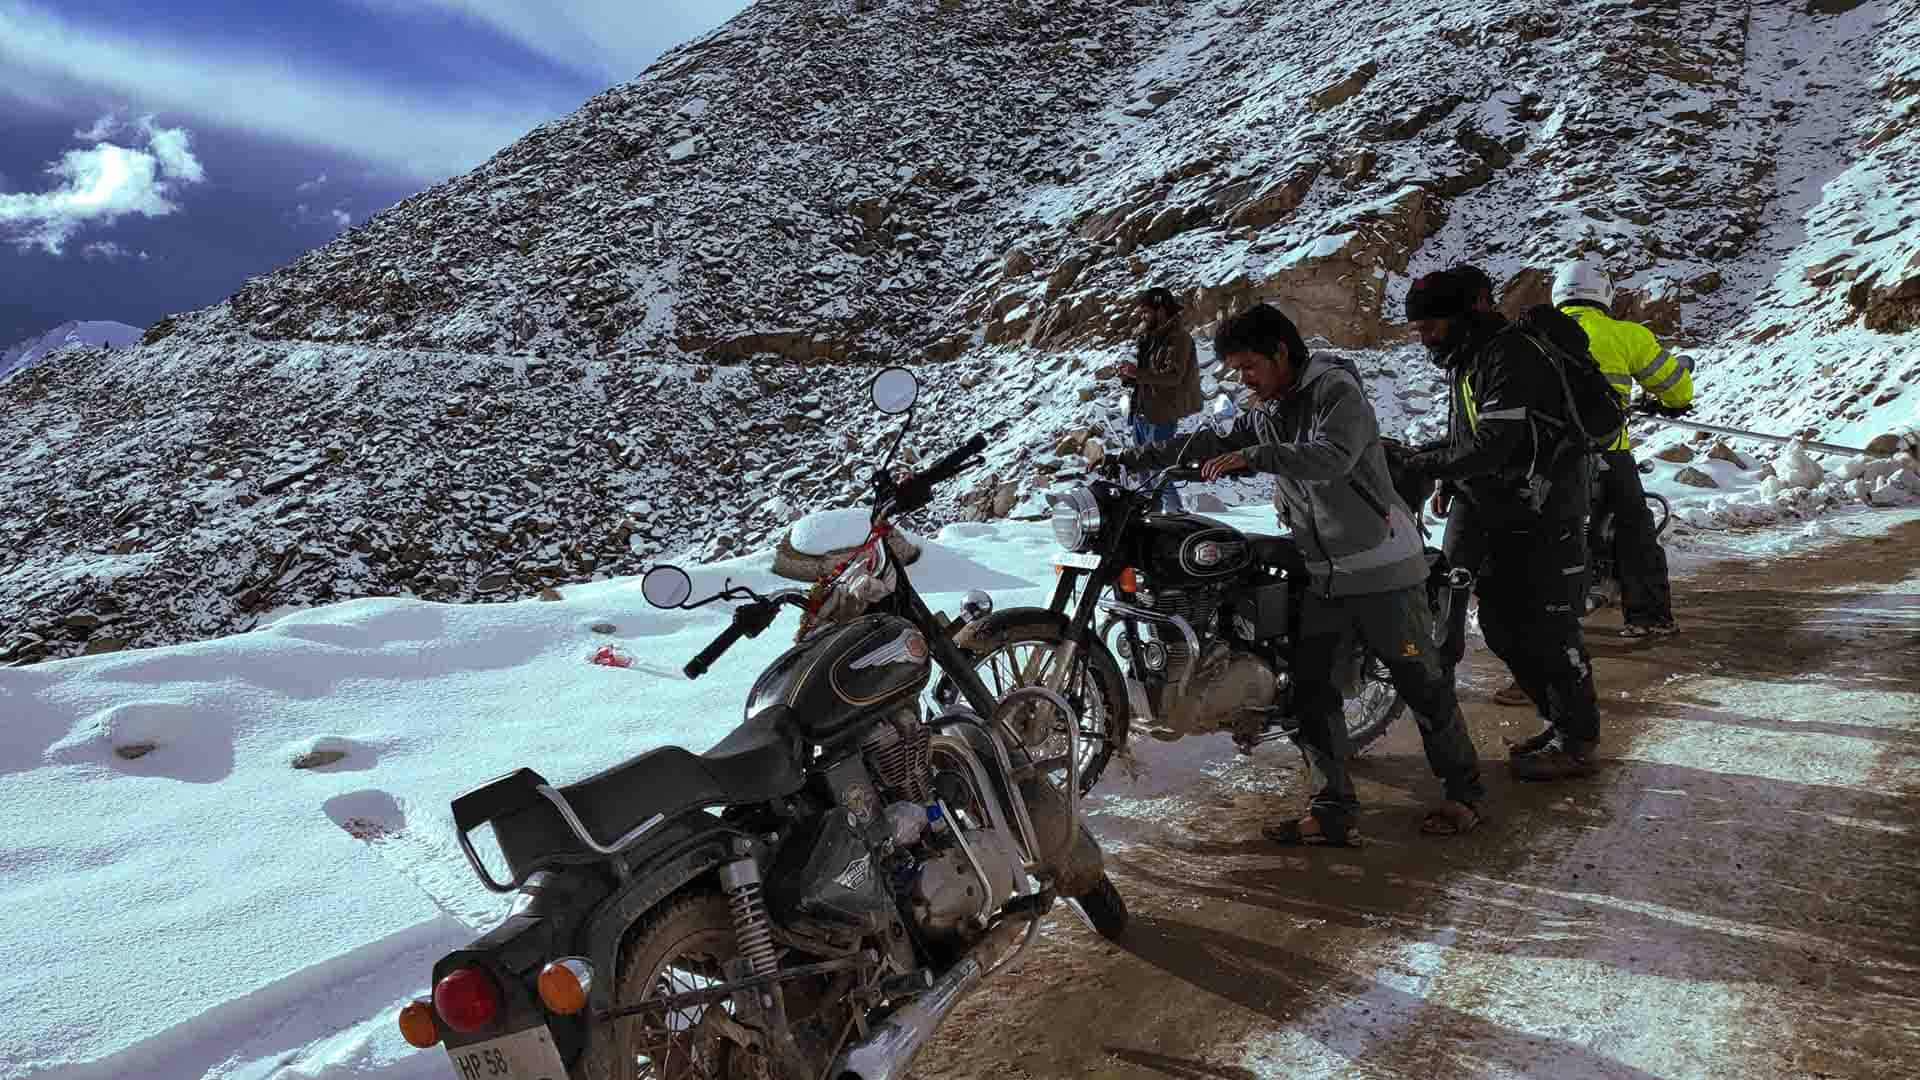 Motorcycle-tours-in-himalayas-ride